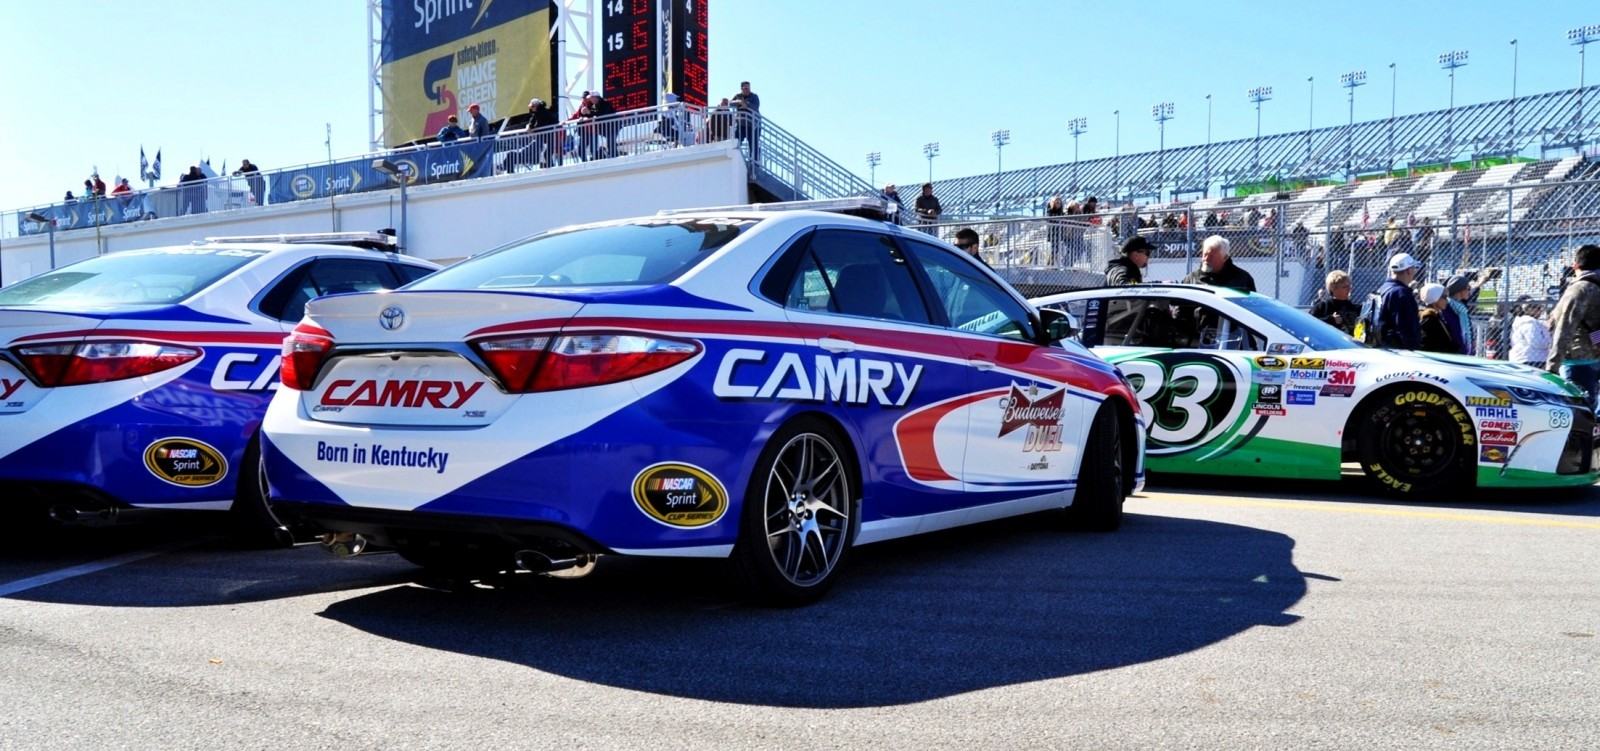 2015 Toyota Camry - DAYTONA 500 Official Pace Car 20